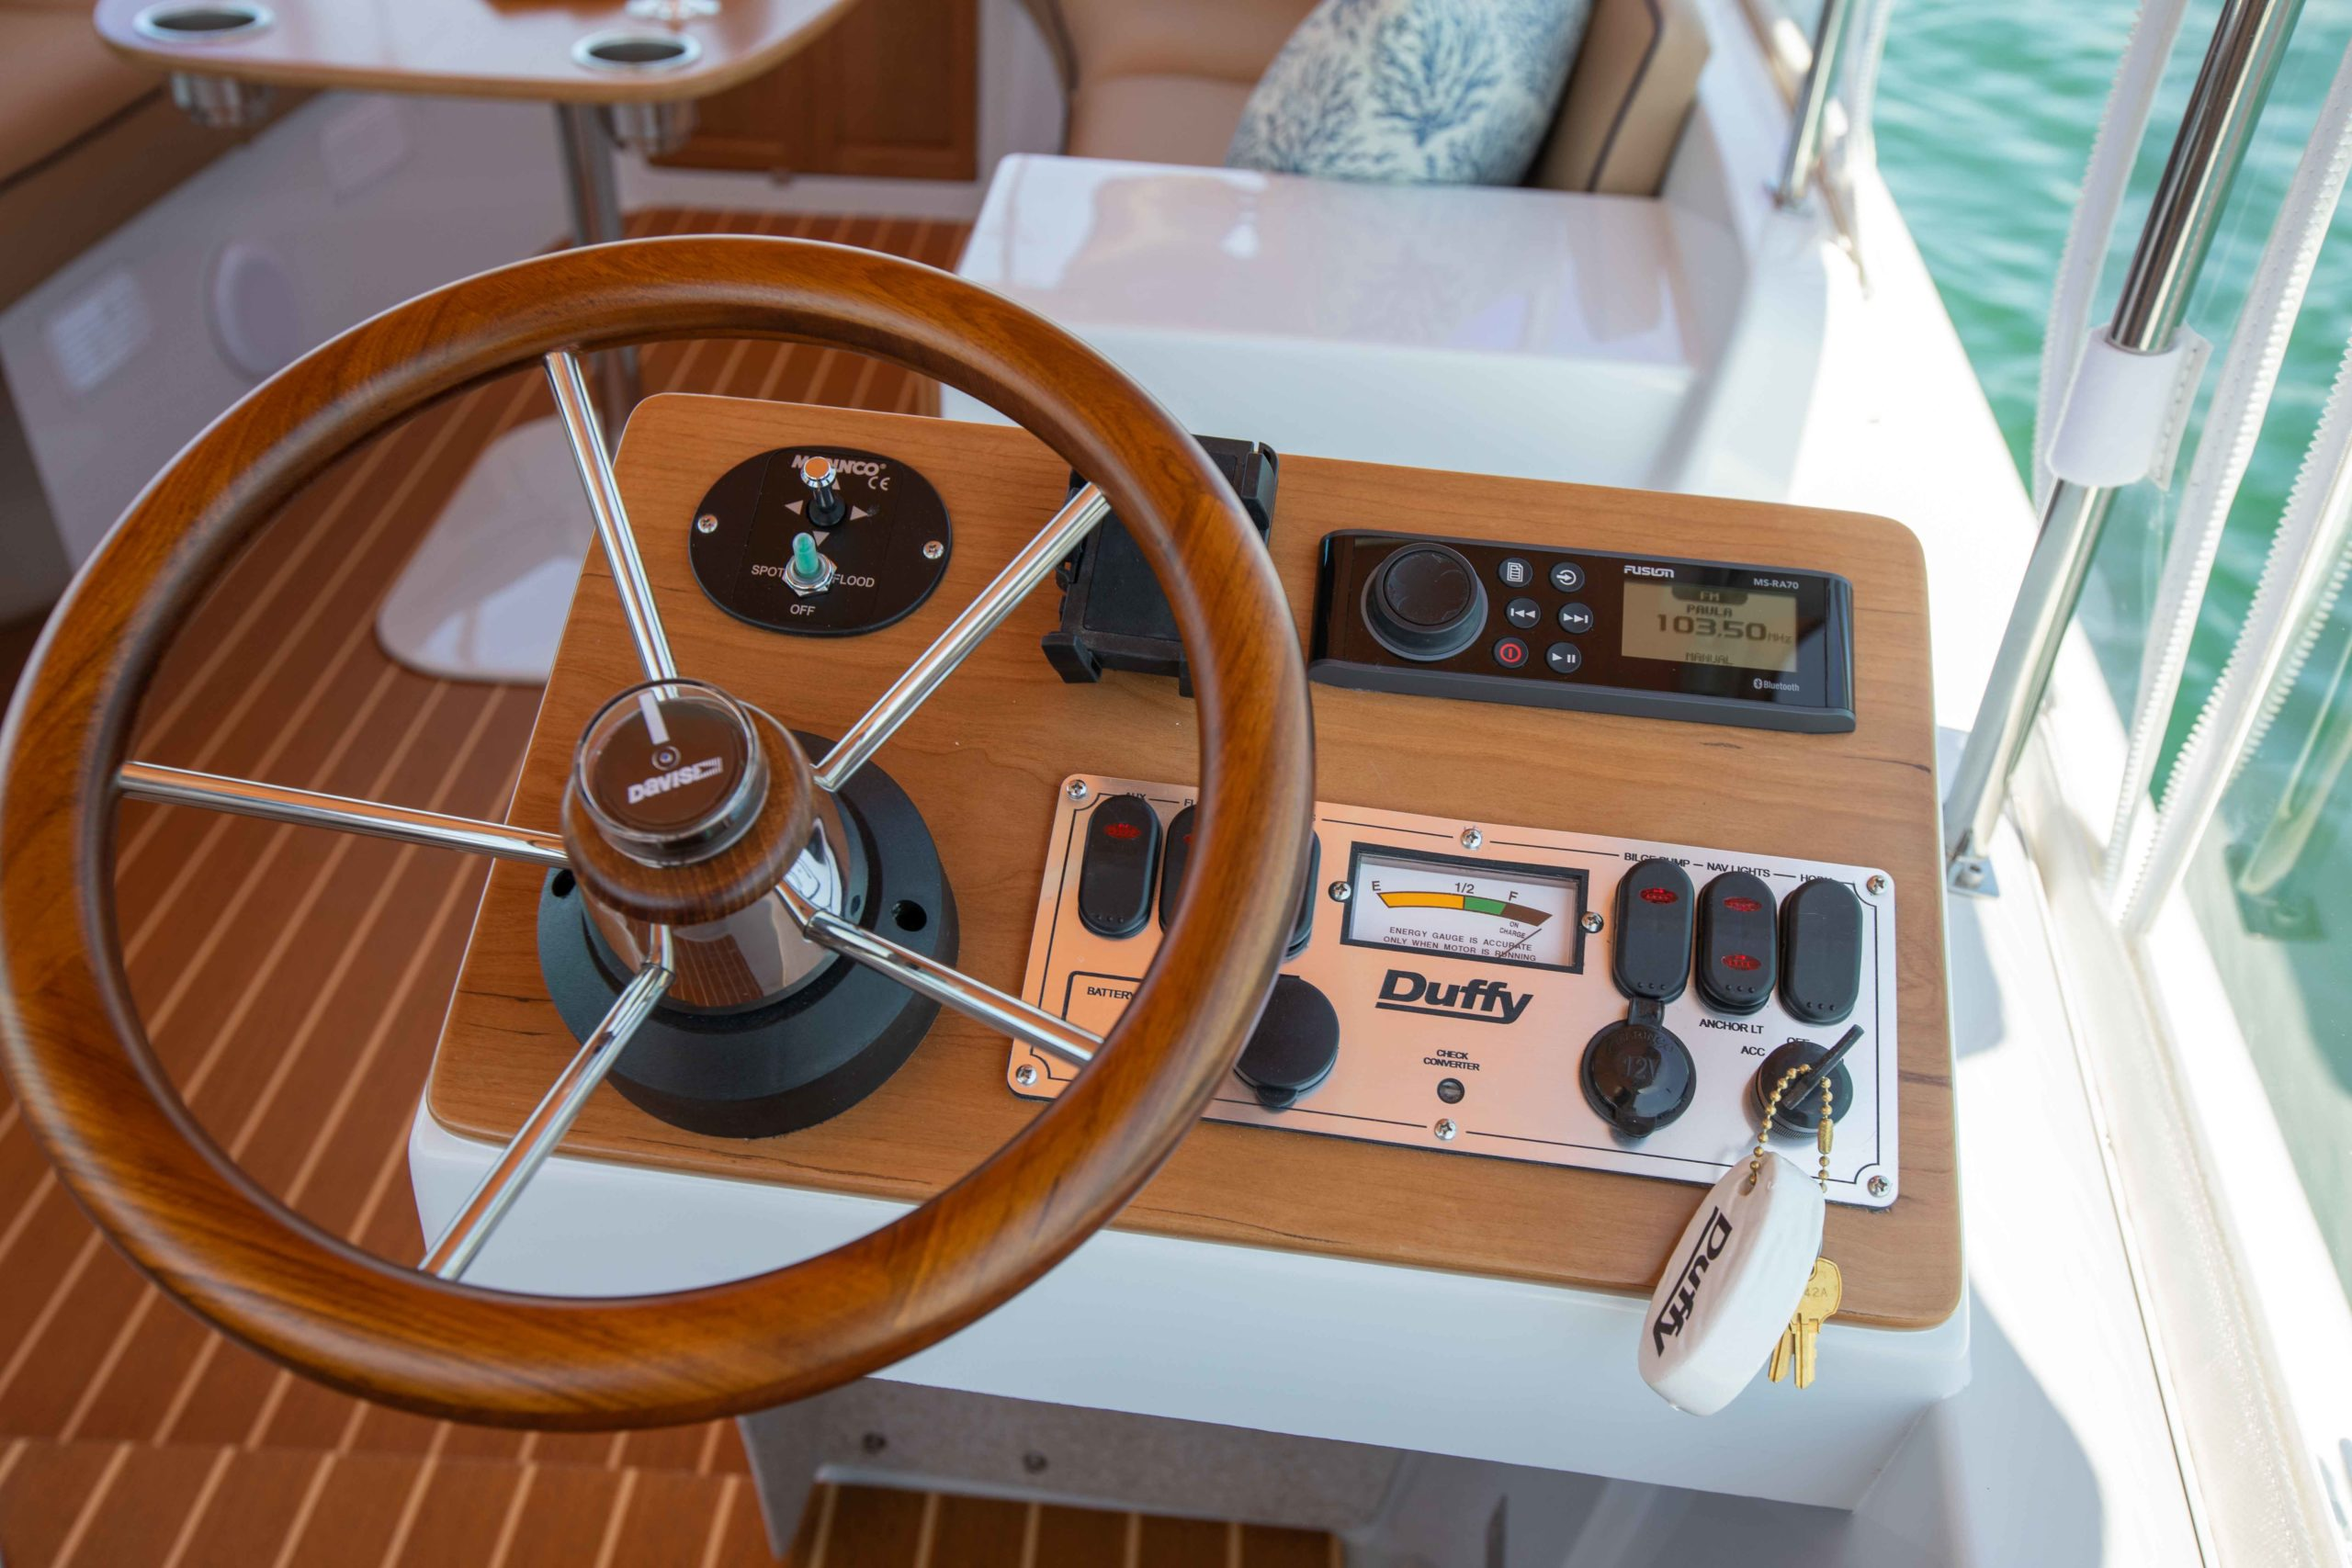 Duffy-Electric-Boats-22-Cuddy-Cabin-Interior-13